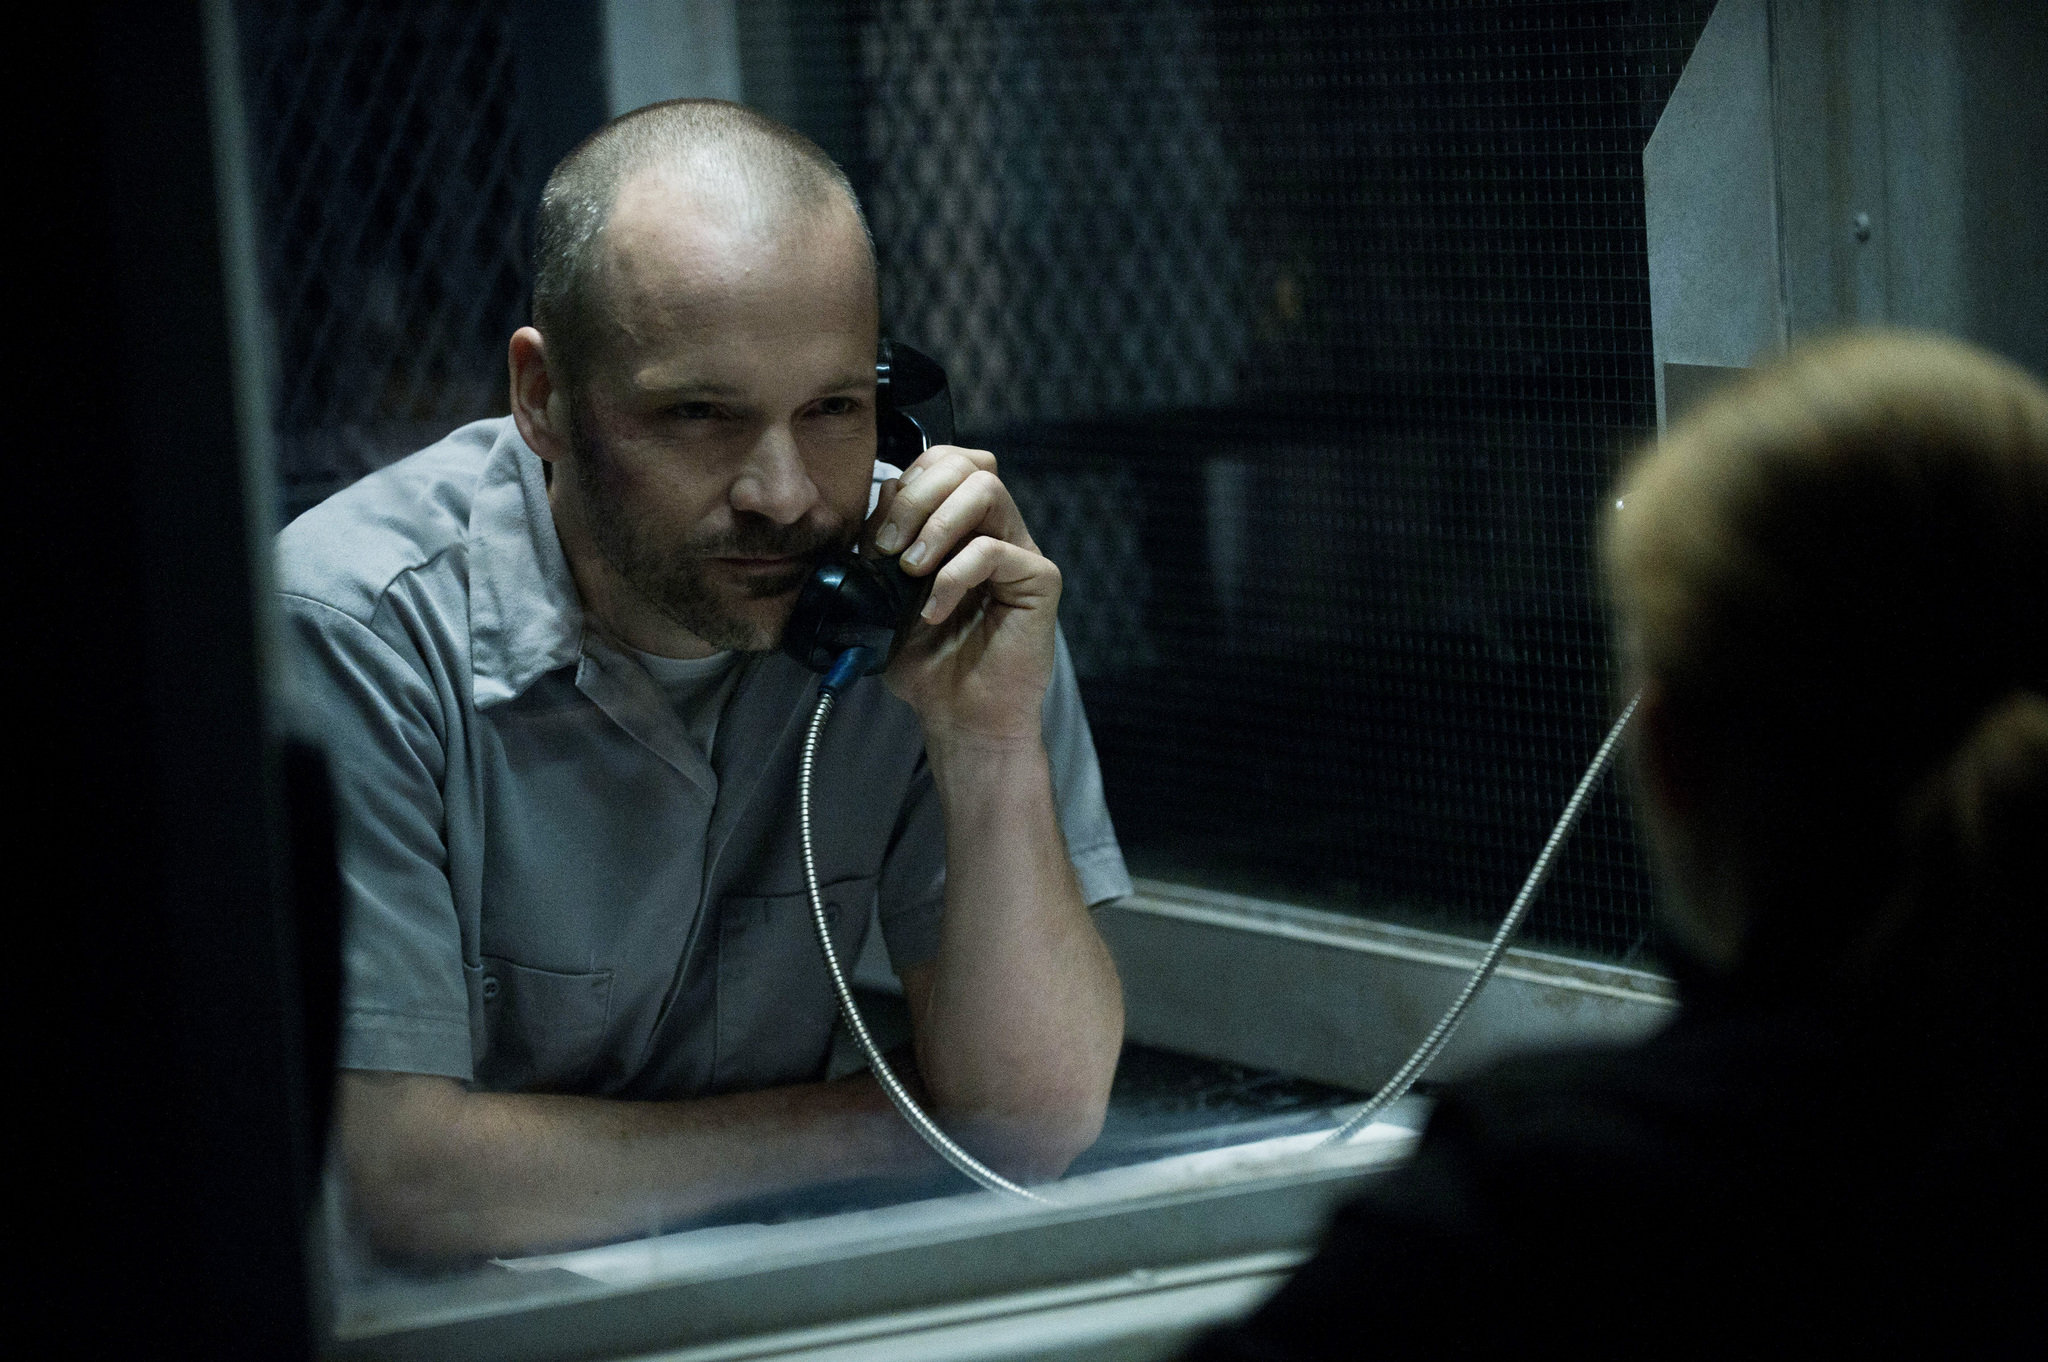 thekillingseason3-petersarsgaard